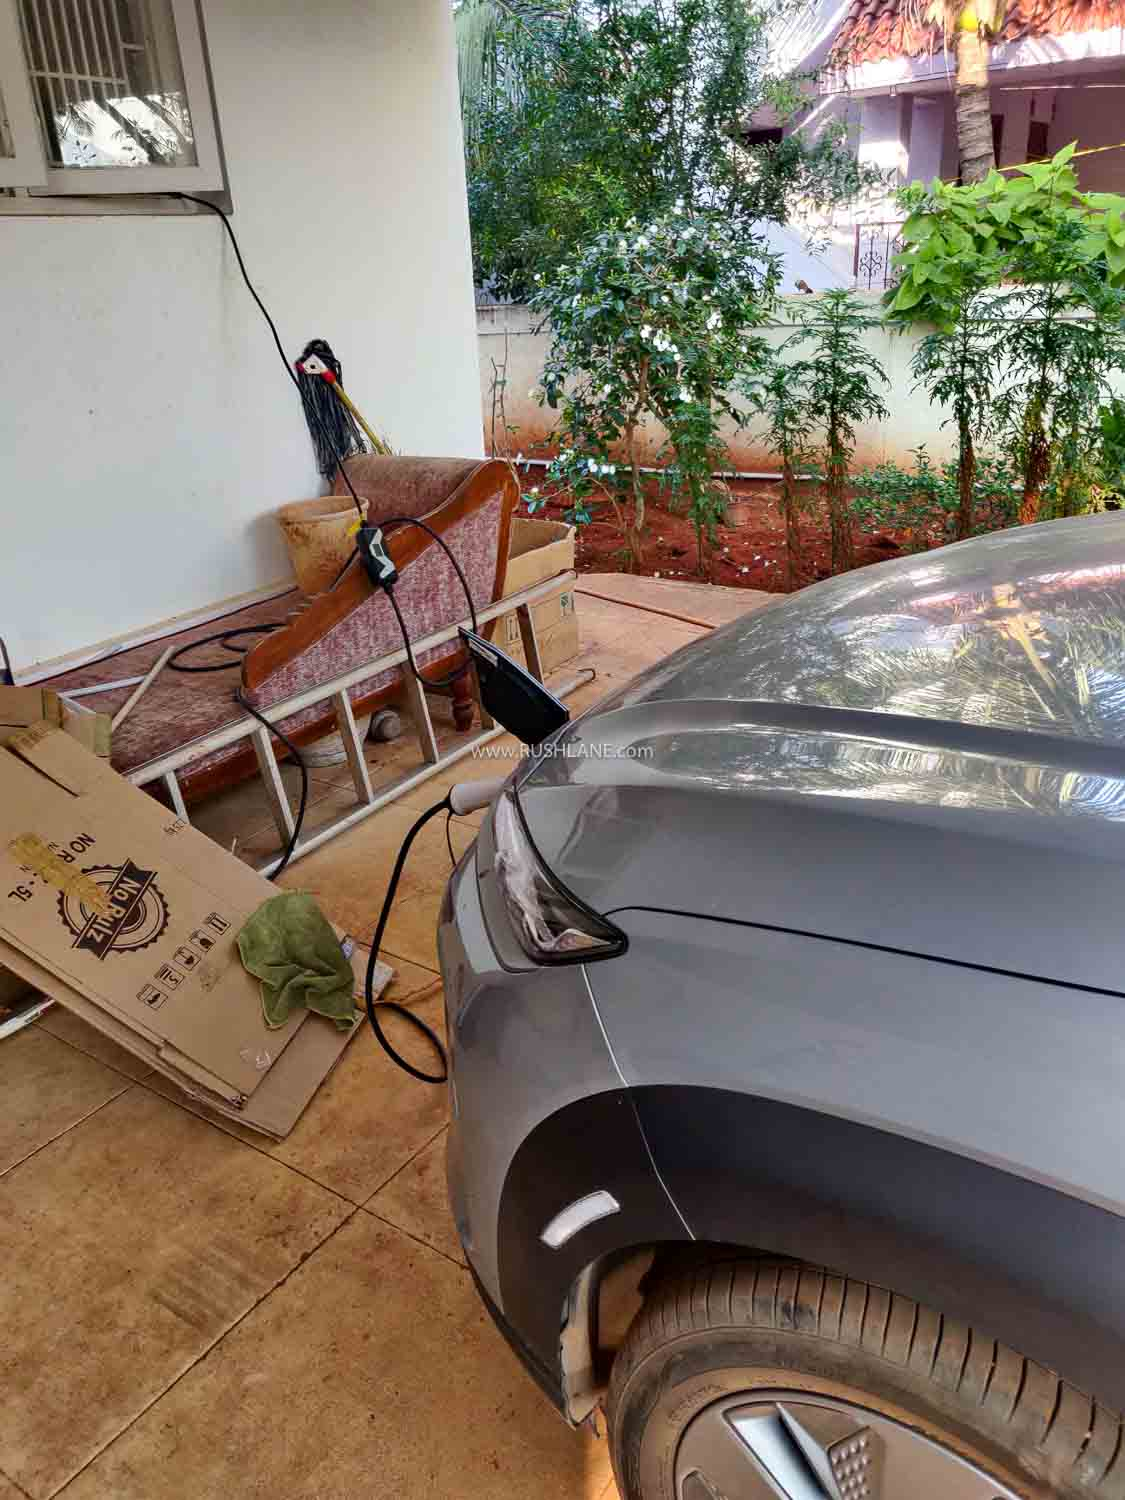 Hyundai Kona EV getting charged at Coimbatore using a regular socket.